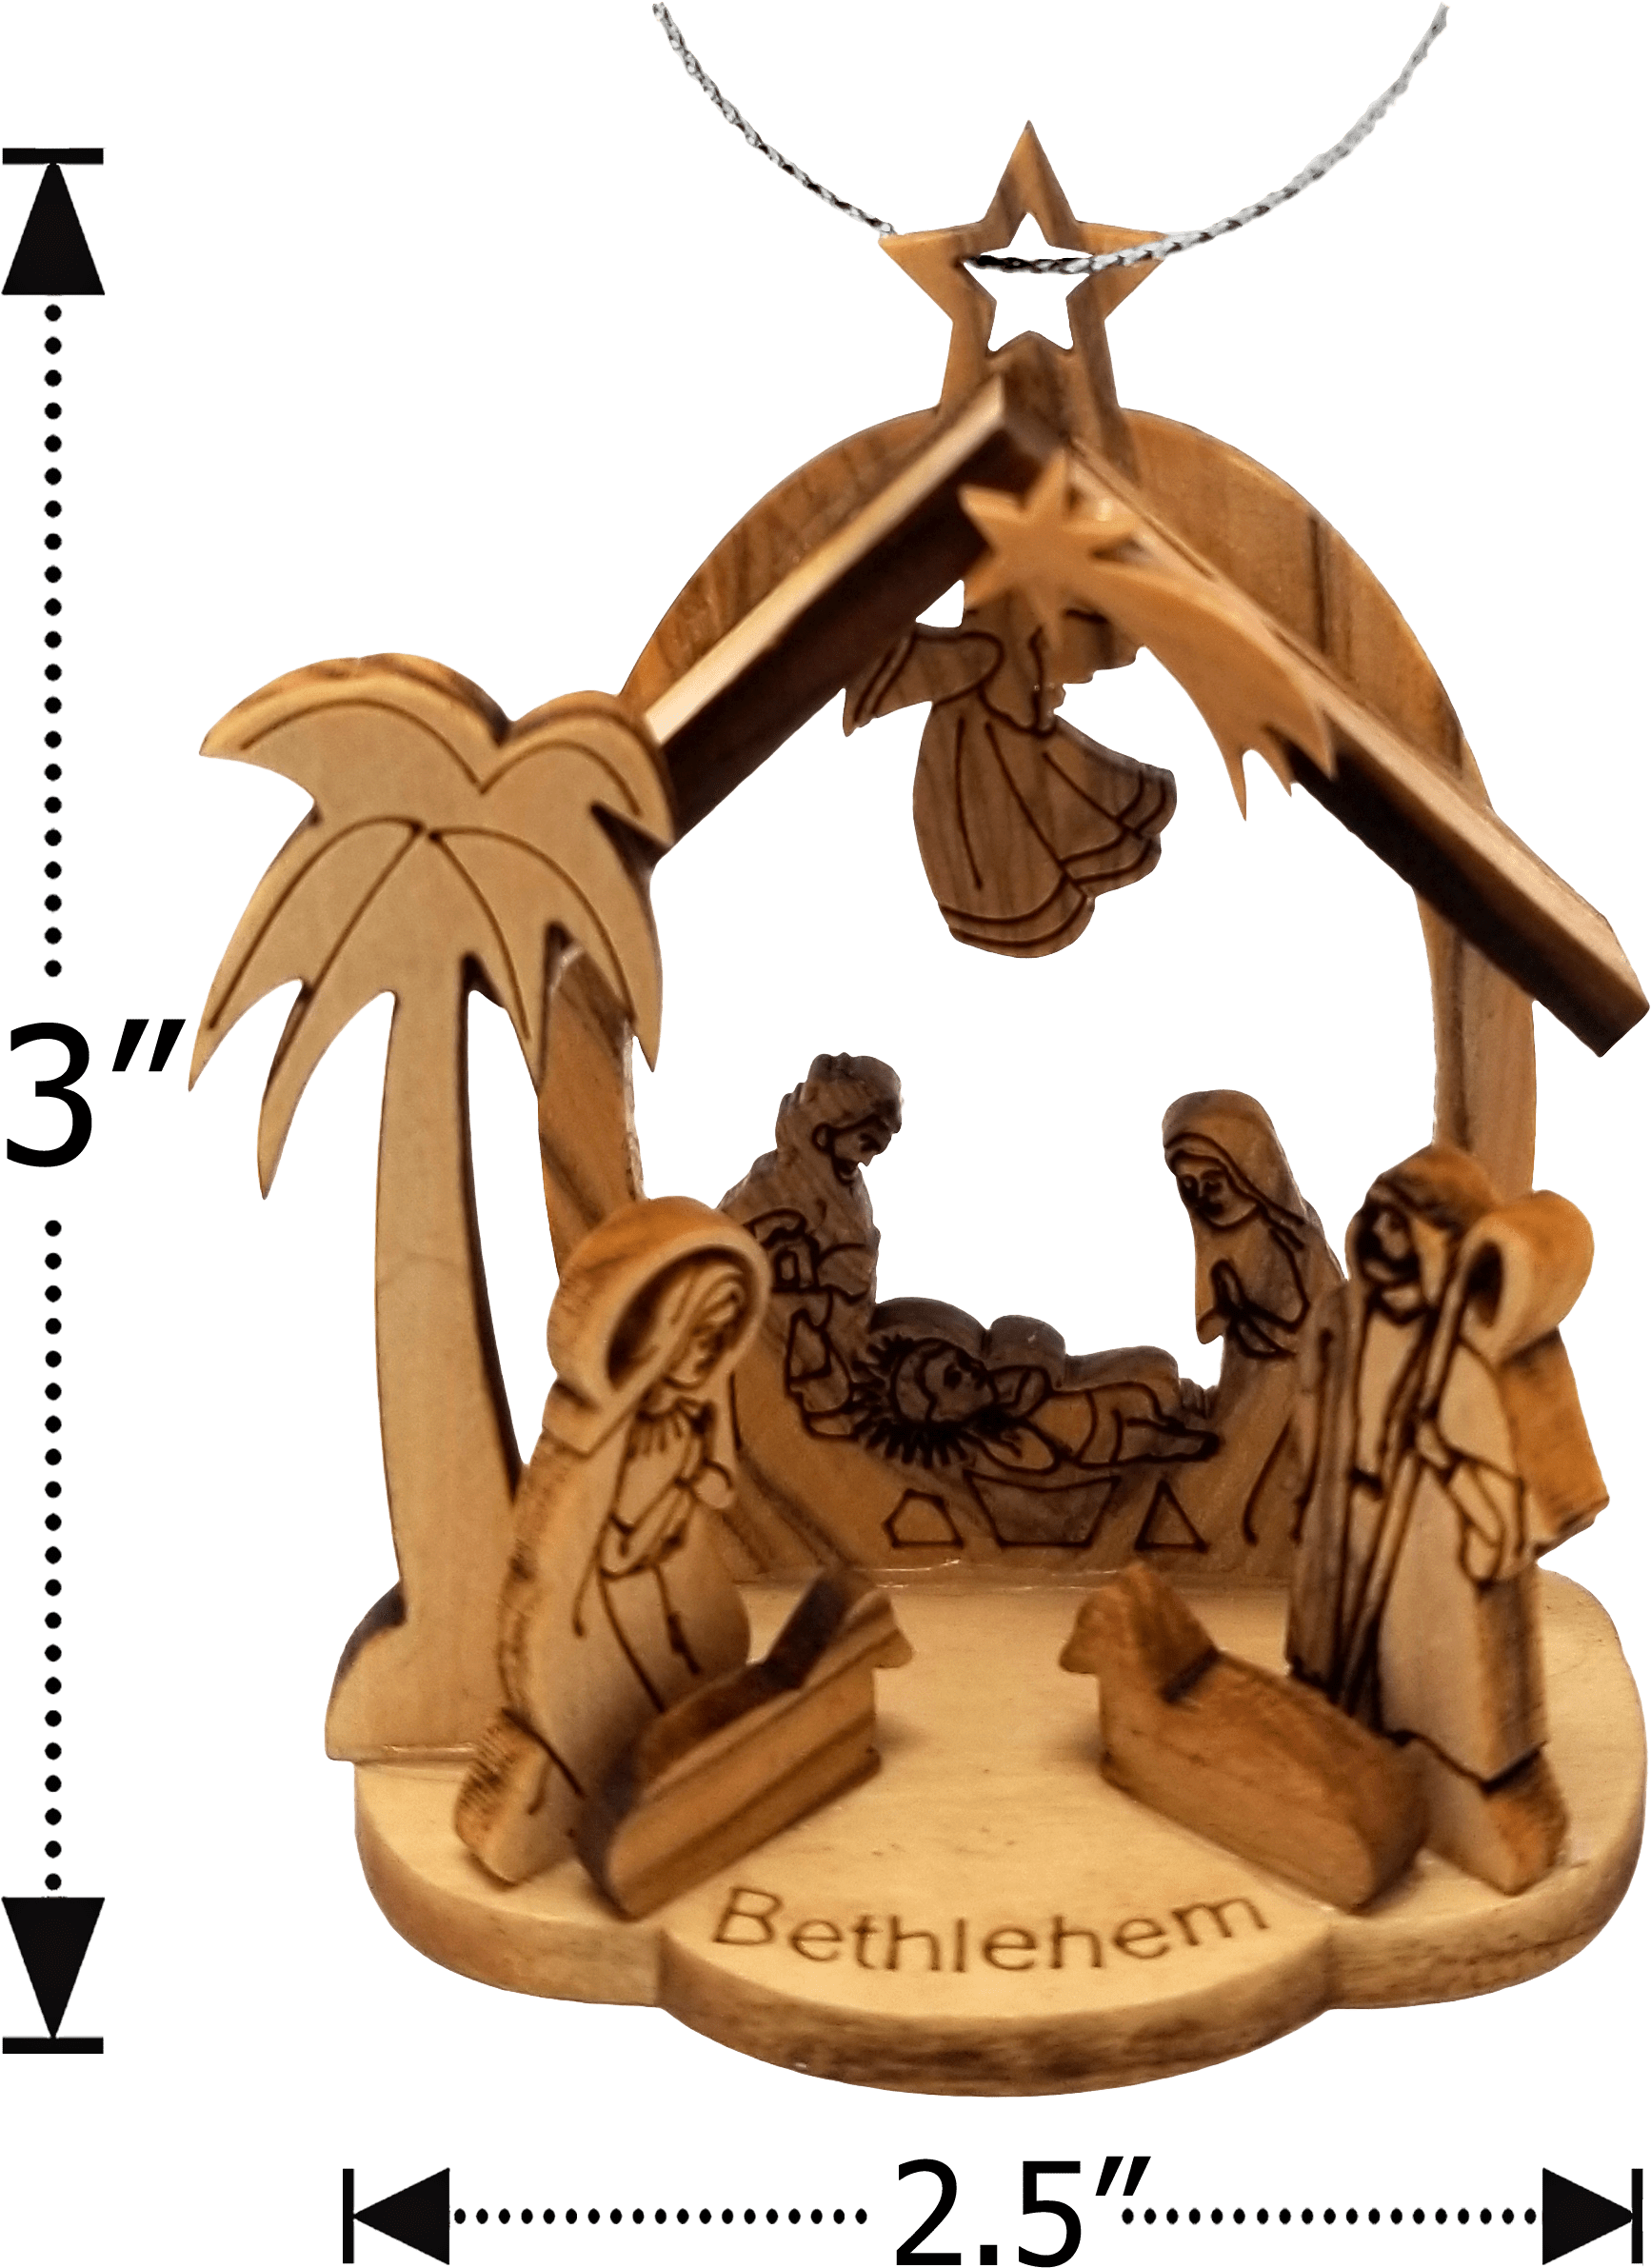 Holy Land Olive Wood Nativity Grotto - Small dimensions